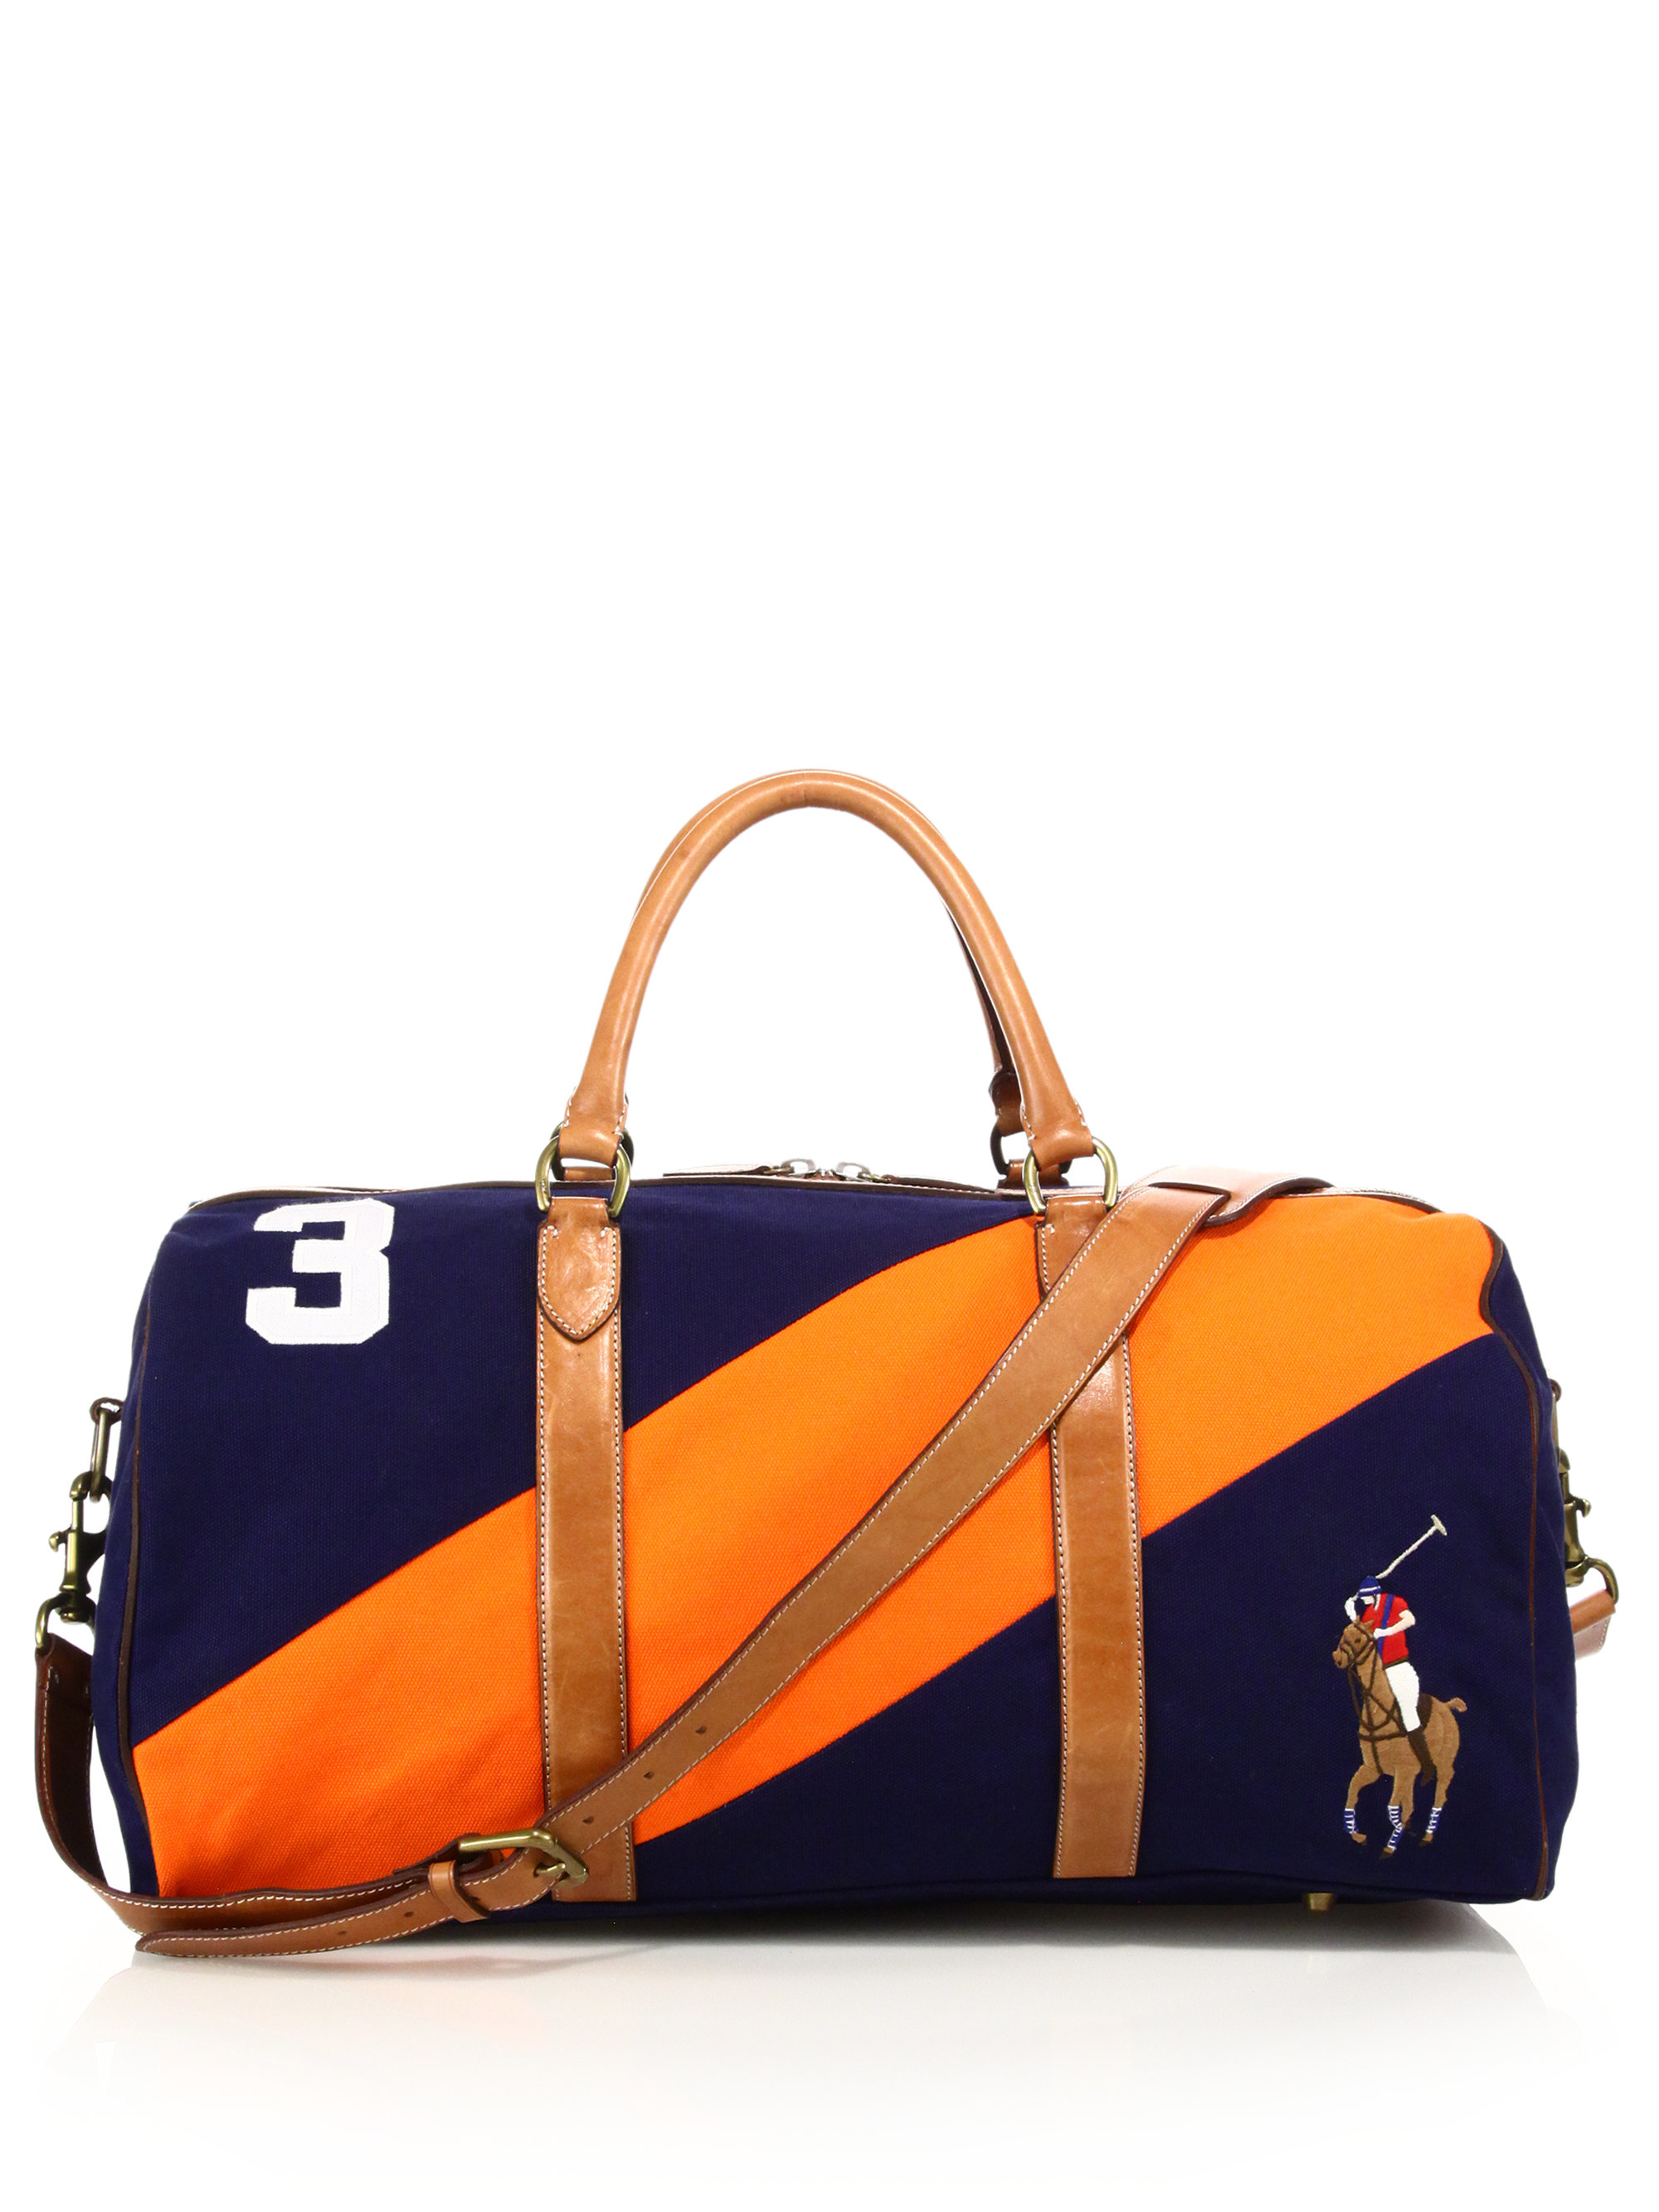 62ea542948 Lyst polo ralph lauren regatta duffel bag in yellow for men jpg 2000x2667 Polo  ralph lauren